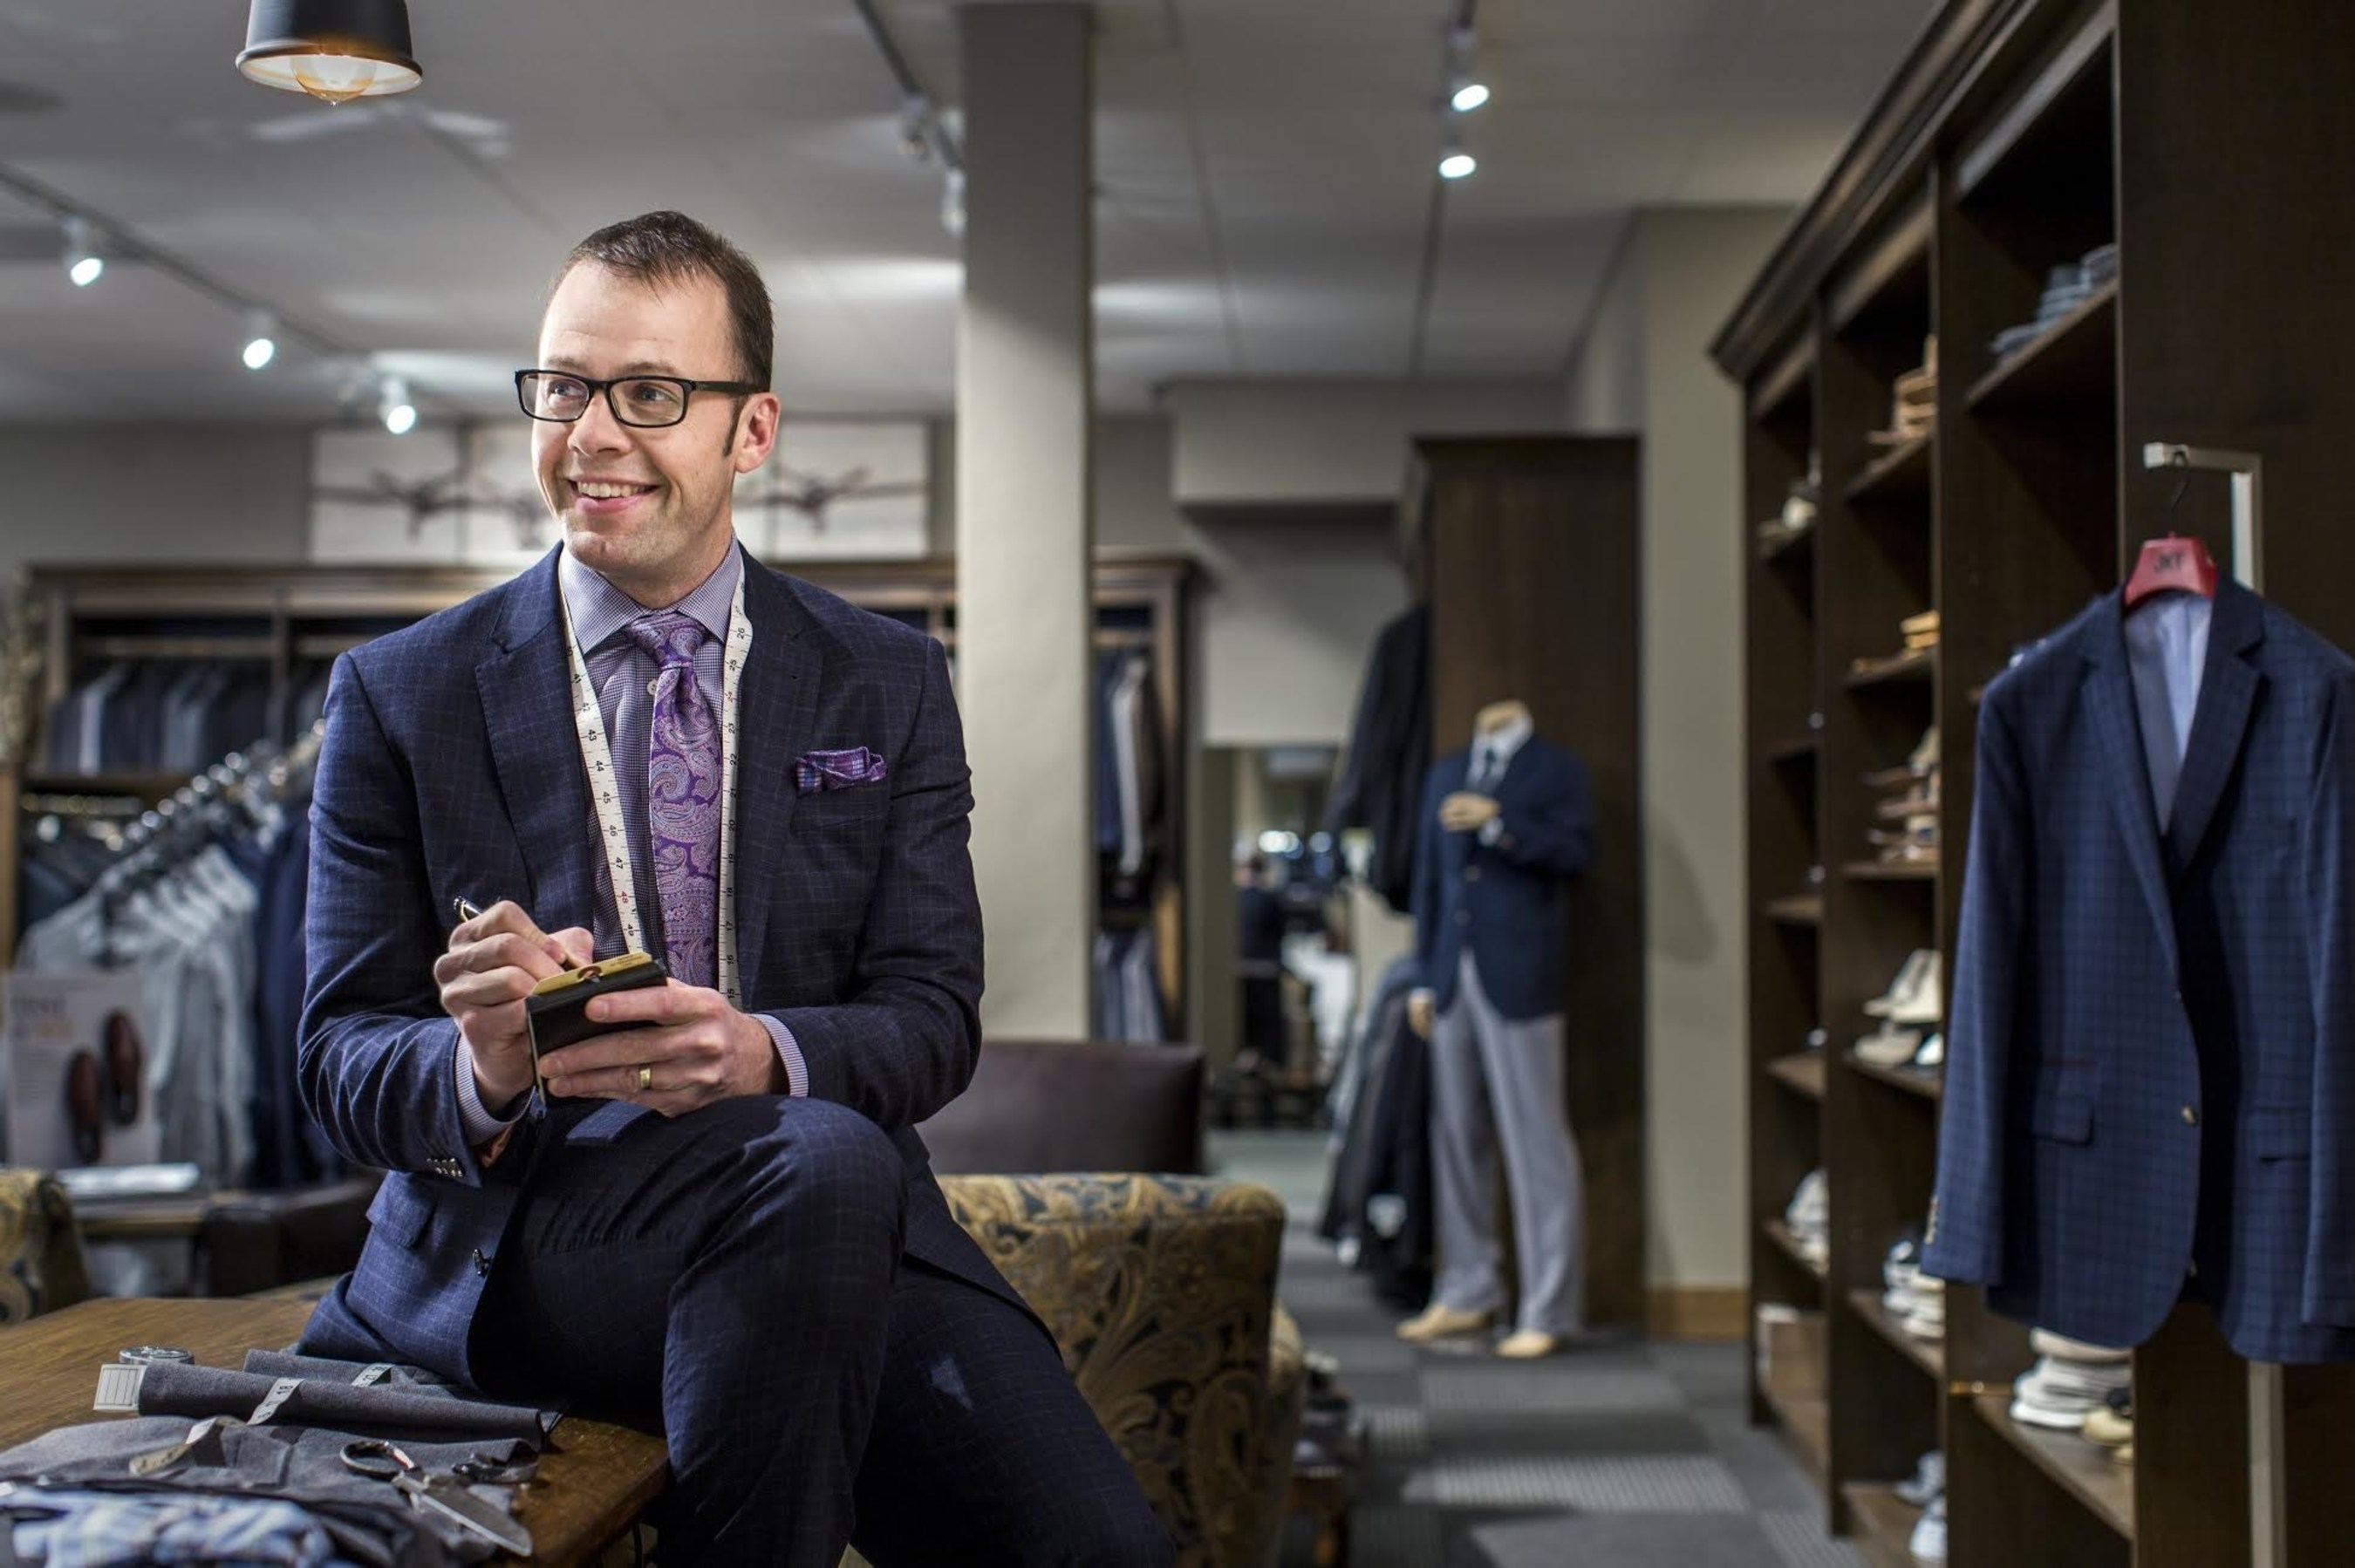 Pictured is Ben Graham, President of Graham's Style Store.